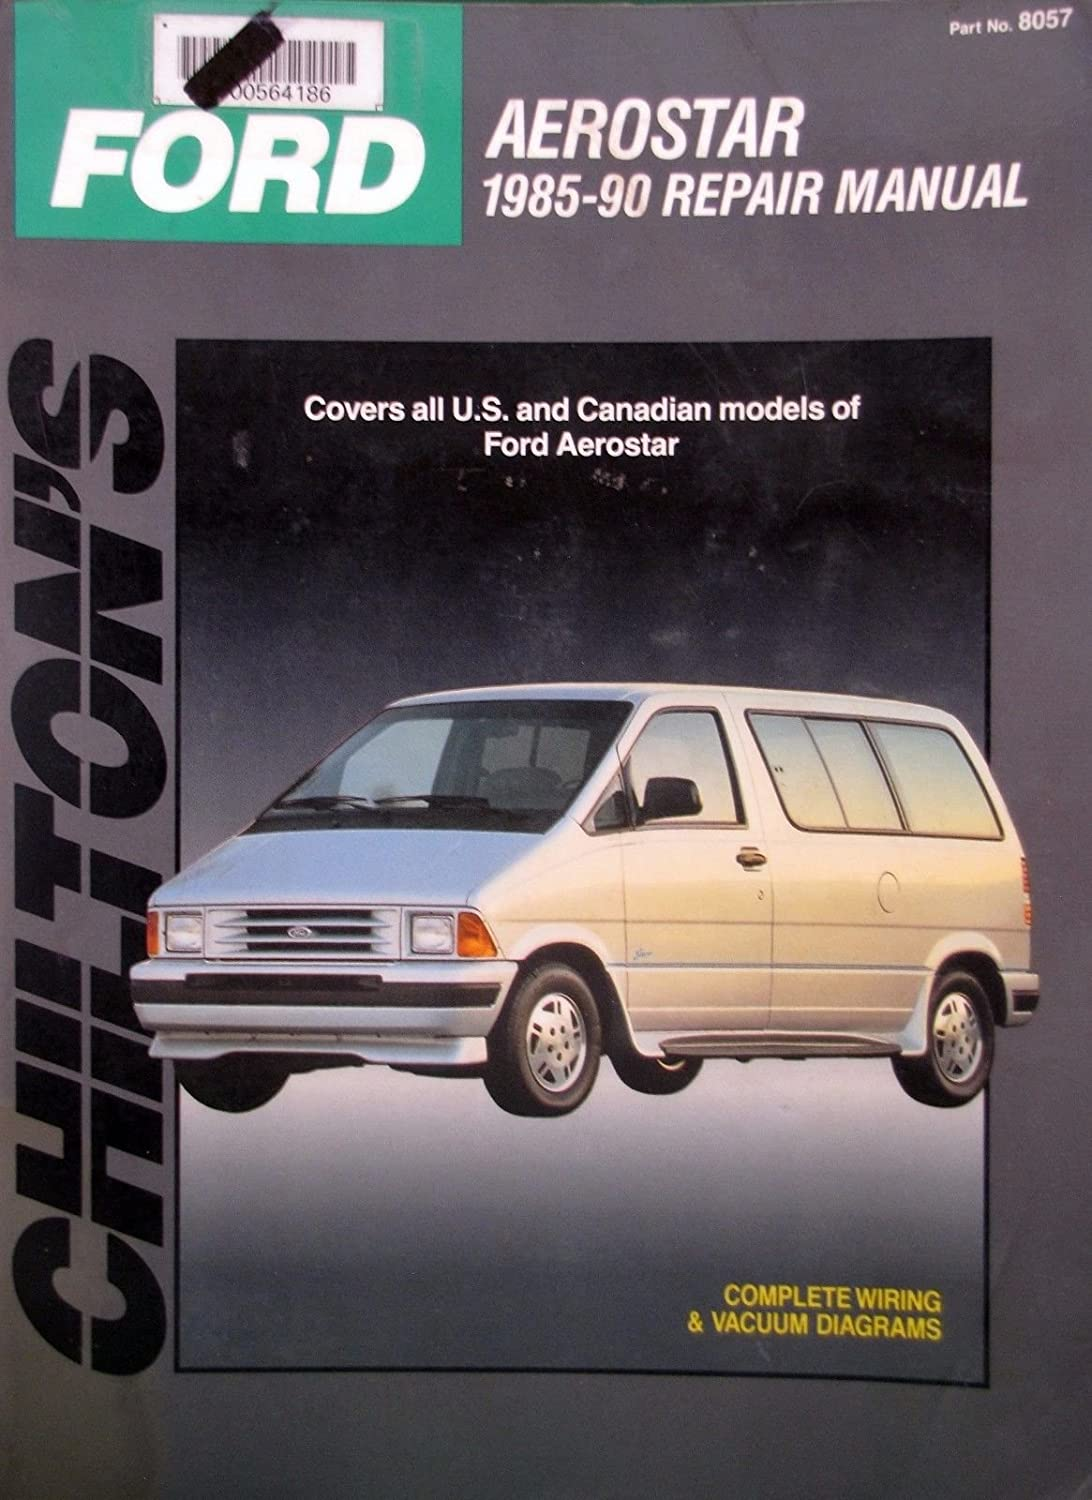 Amazon.com : 1985-90 Chilton Repair Manual - Ford Aerostar minivan - #8057  : Everything Else